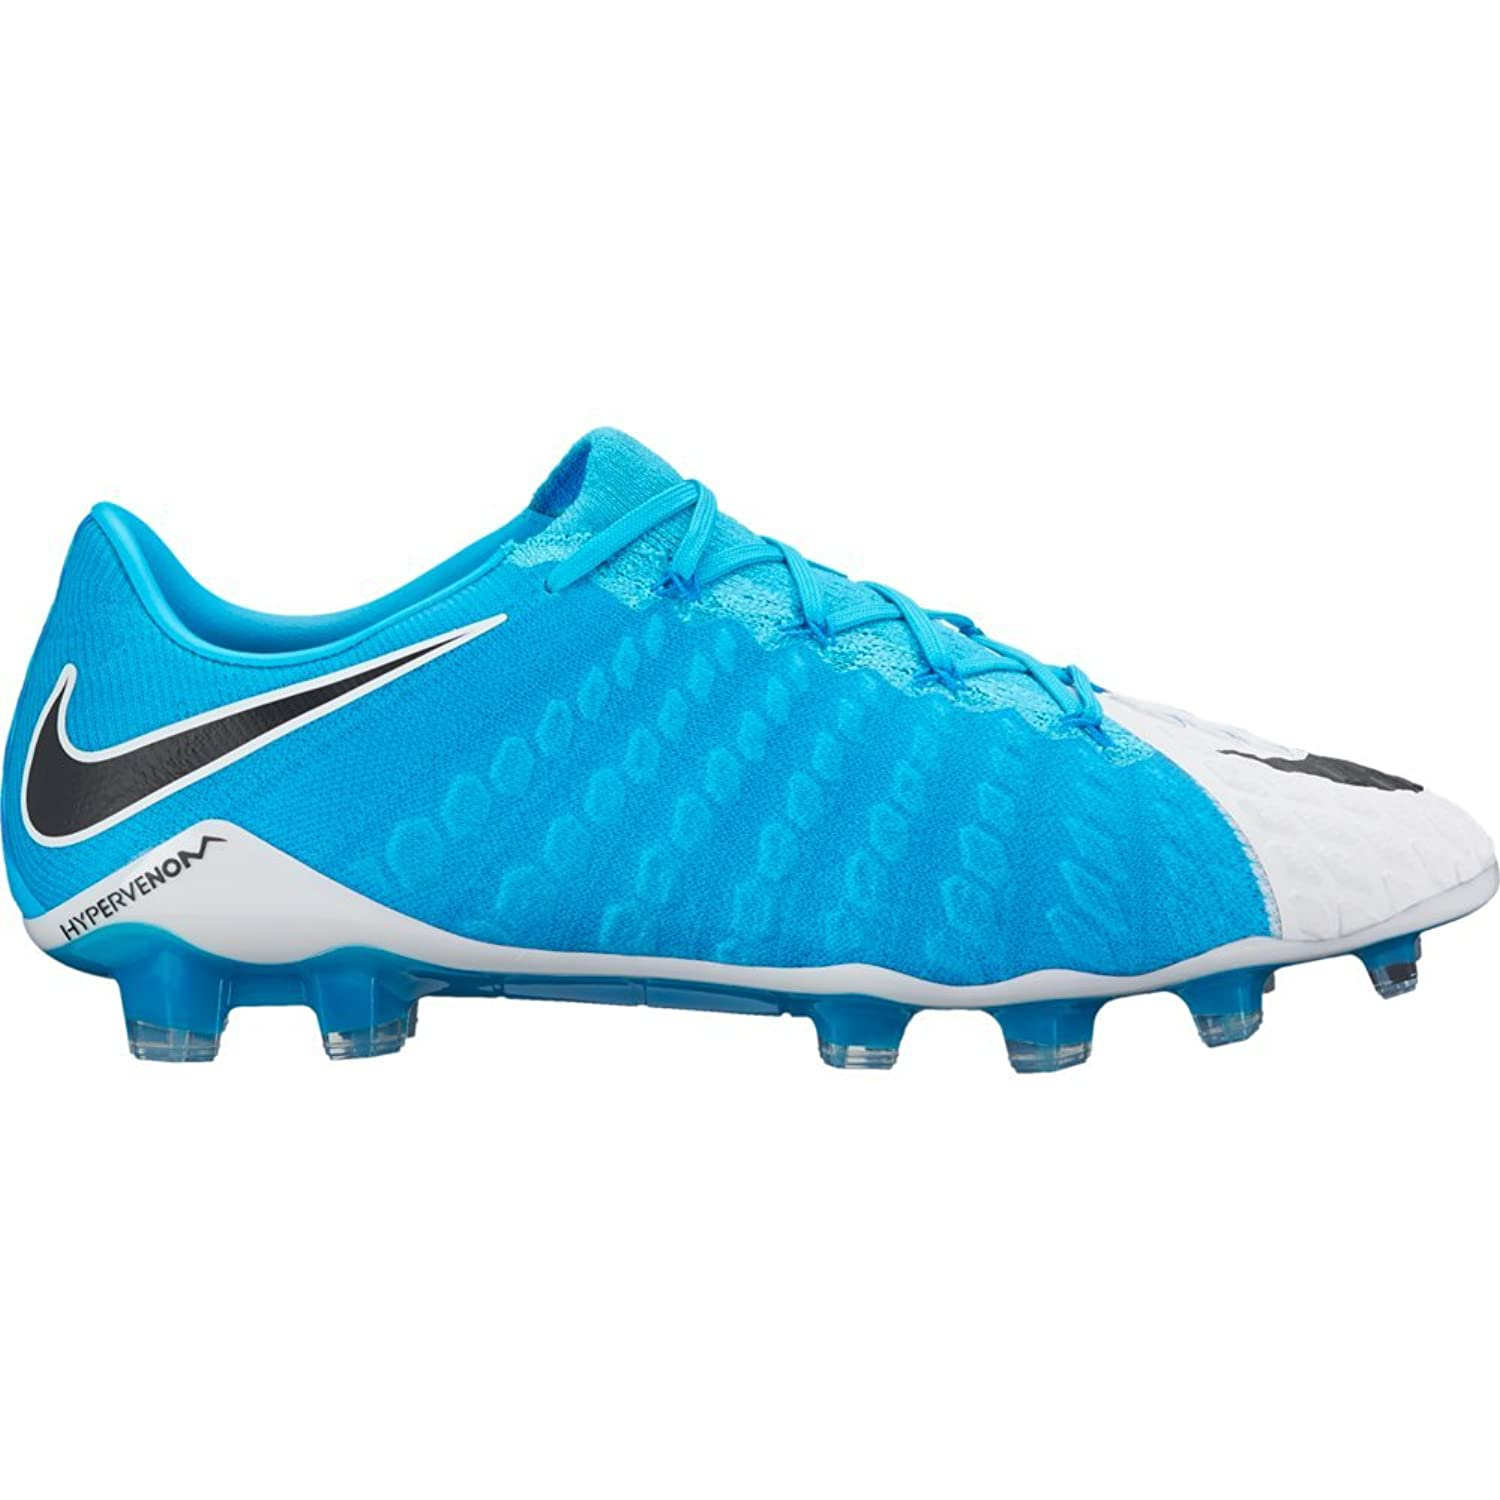 ... Amazon.com | Nike Men's Hypervenom Phantom II FG Soccer Cleat (Photo  Blue)